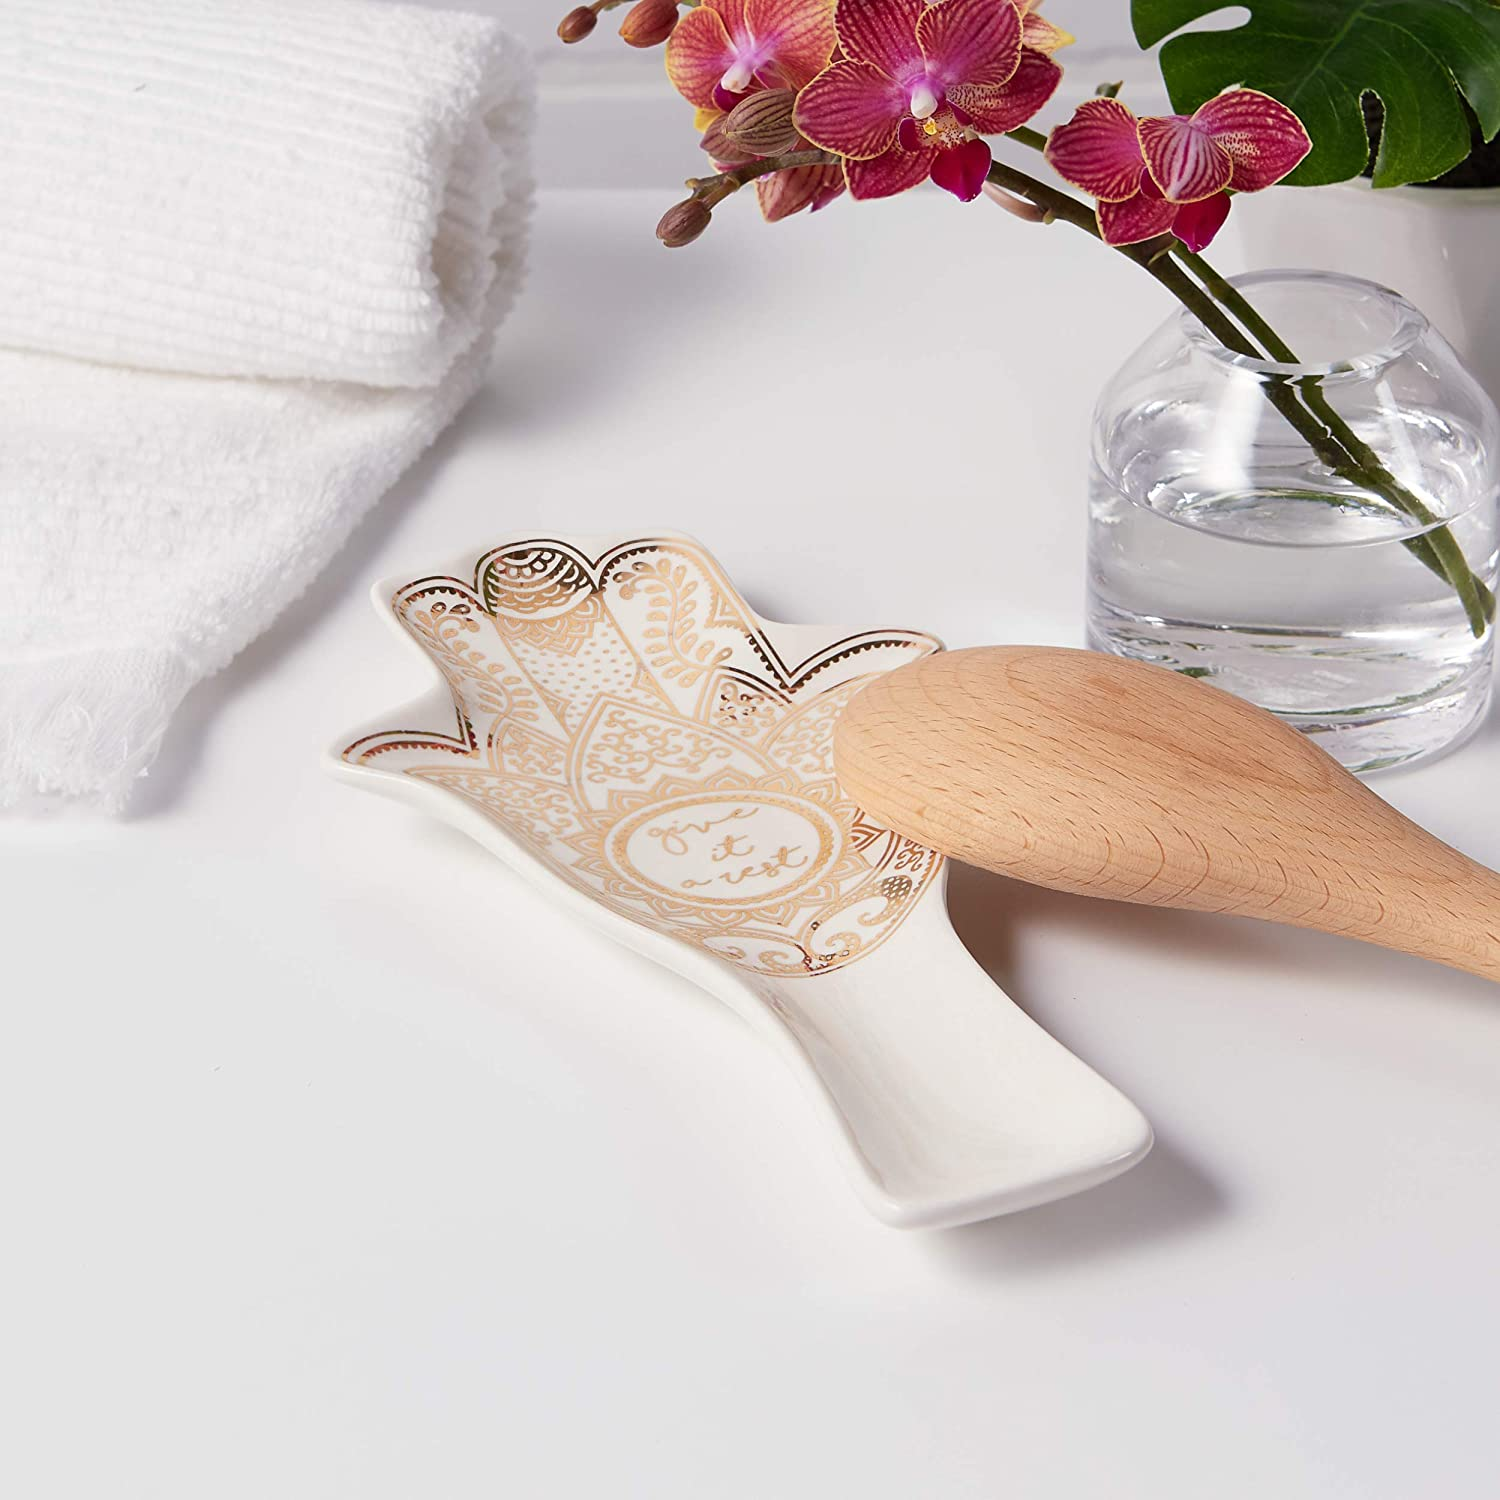 Tri-coastal Design Animal Spoon Rest Ideal for Your measuring Needs in Kitchen boho